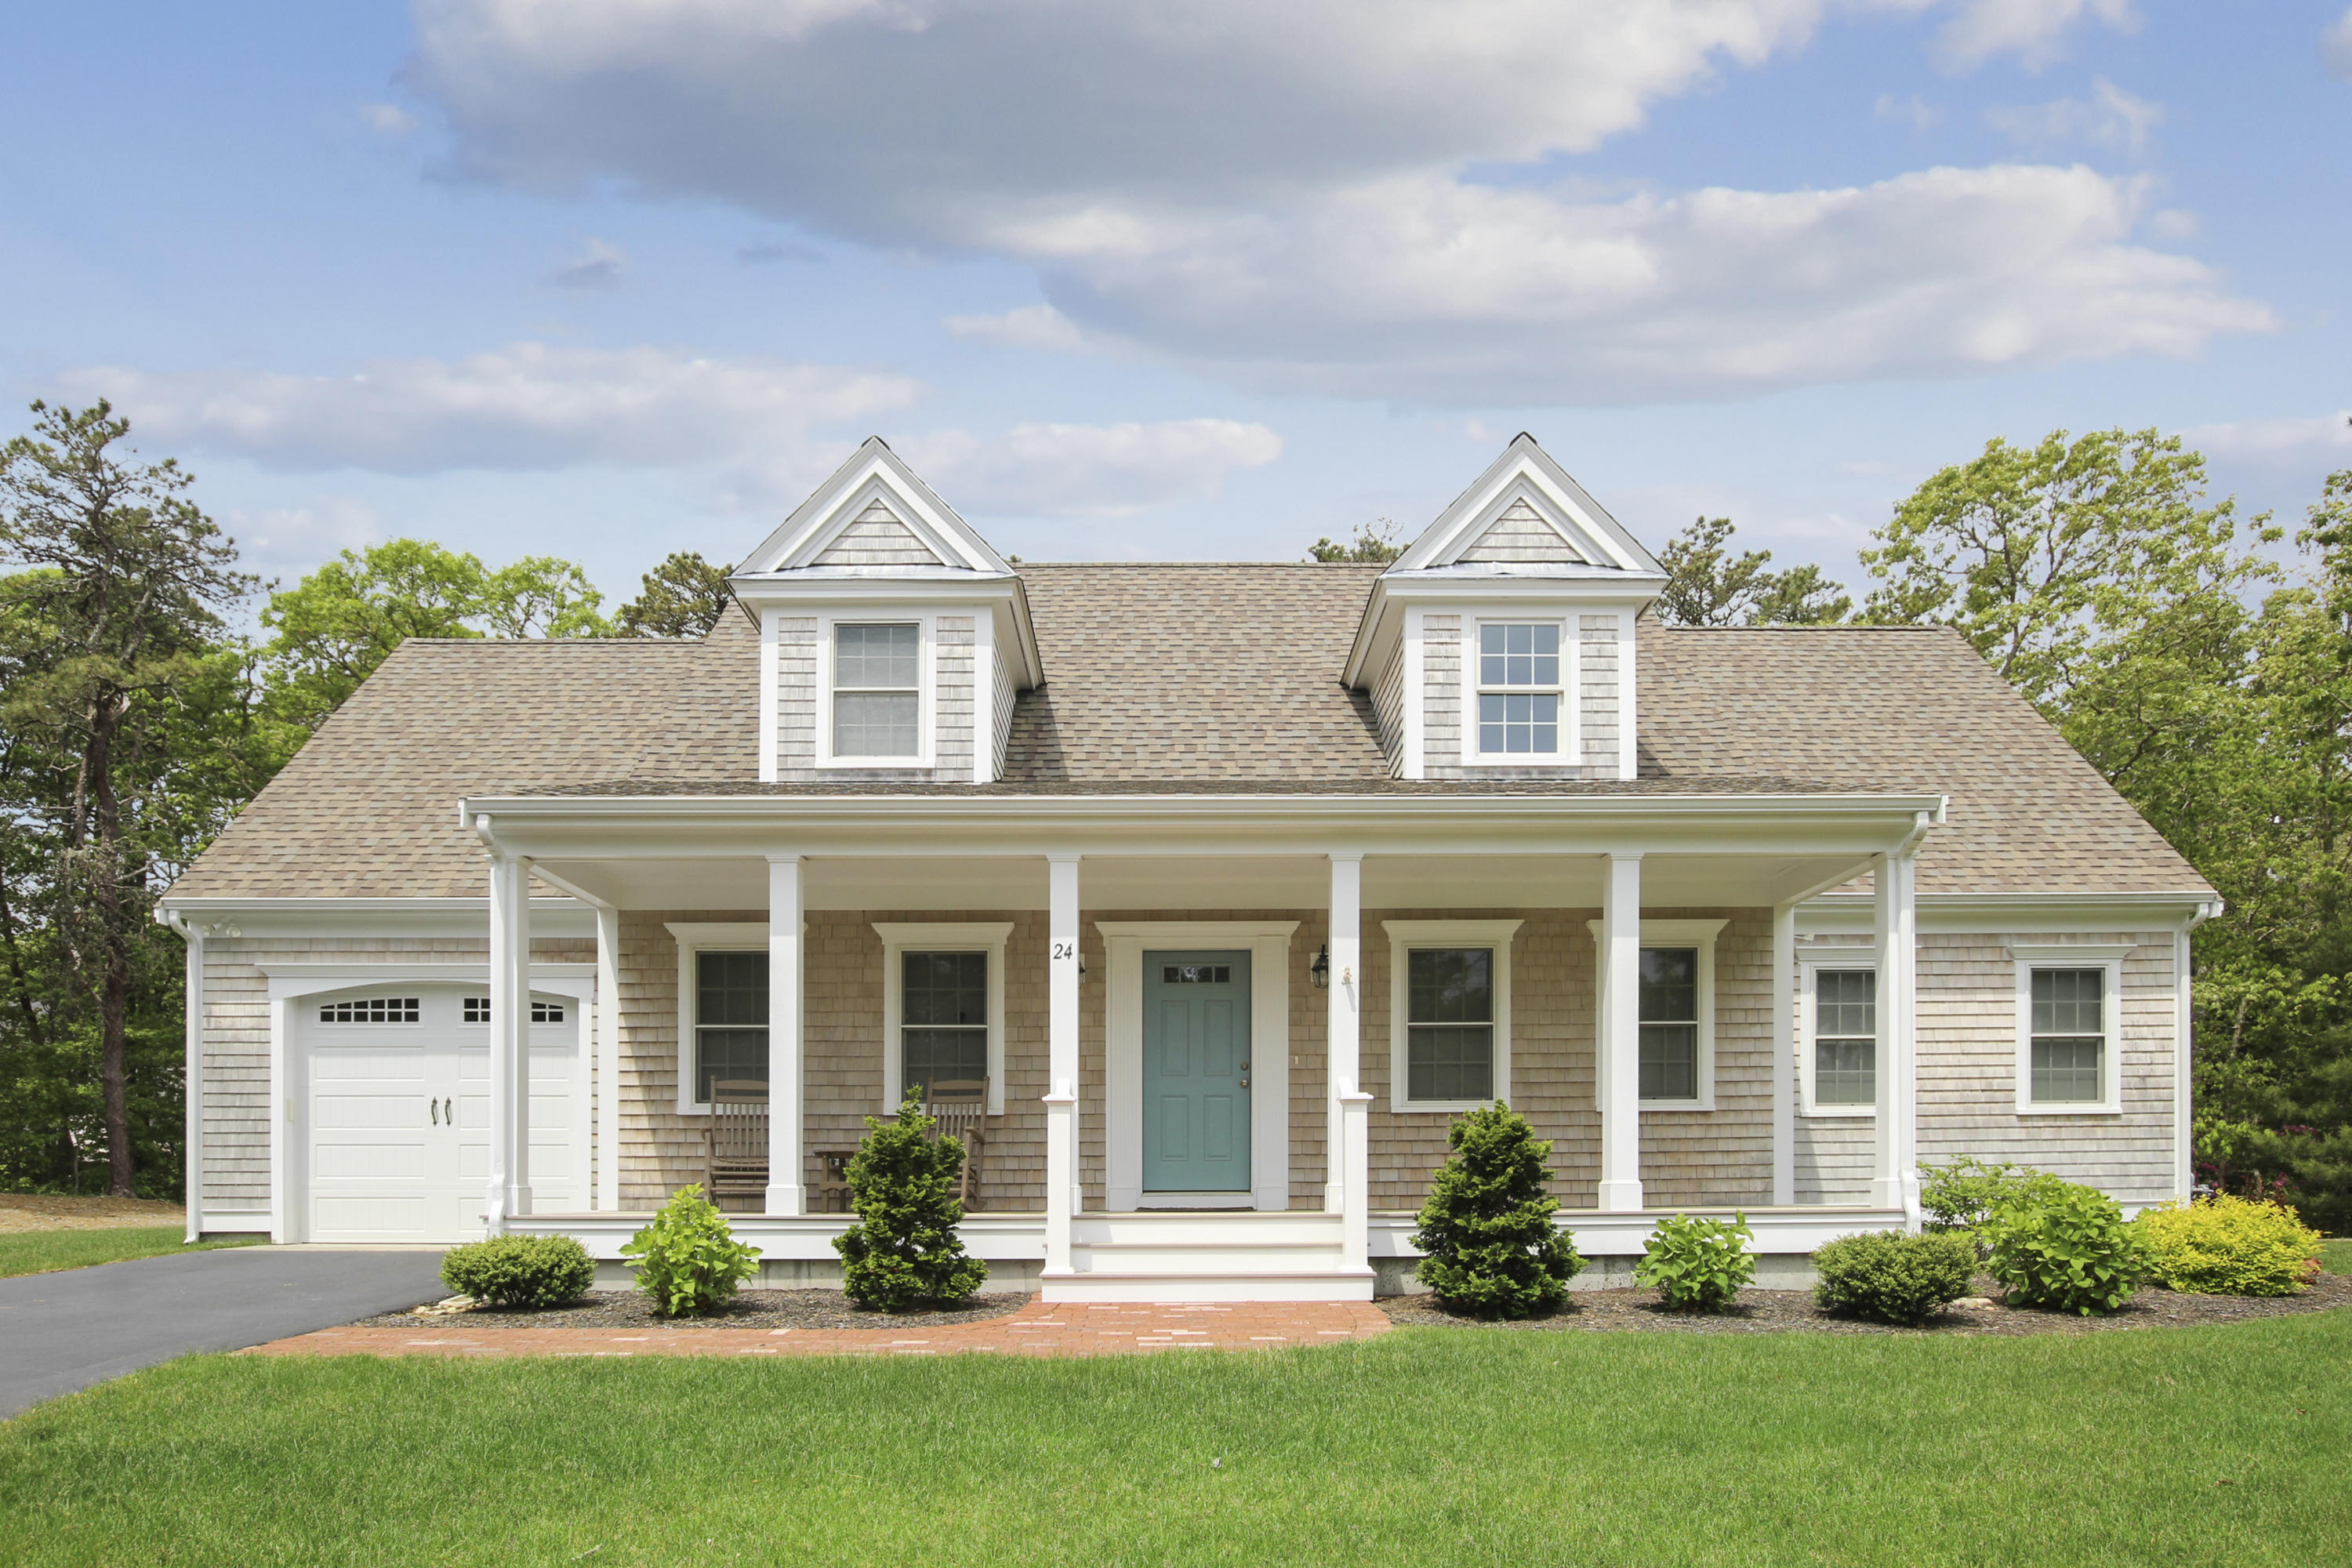 24 Obed Brooks Road Harwich, MA 02645